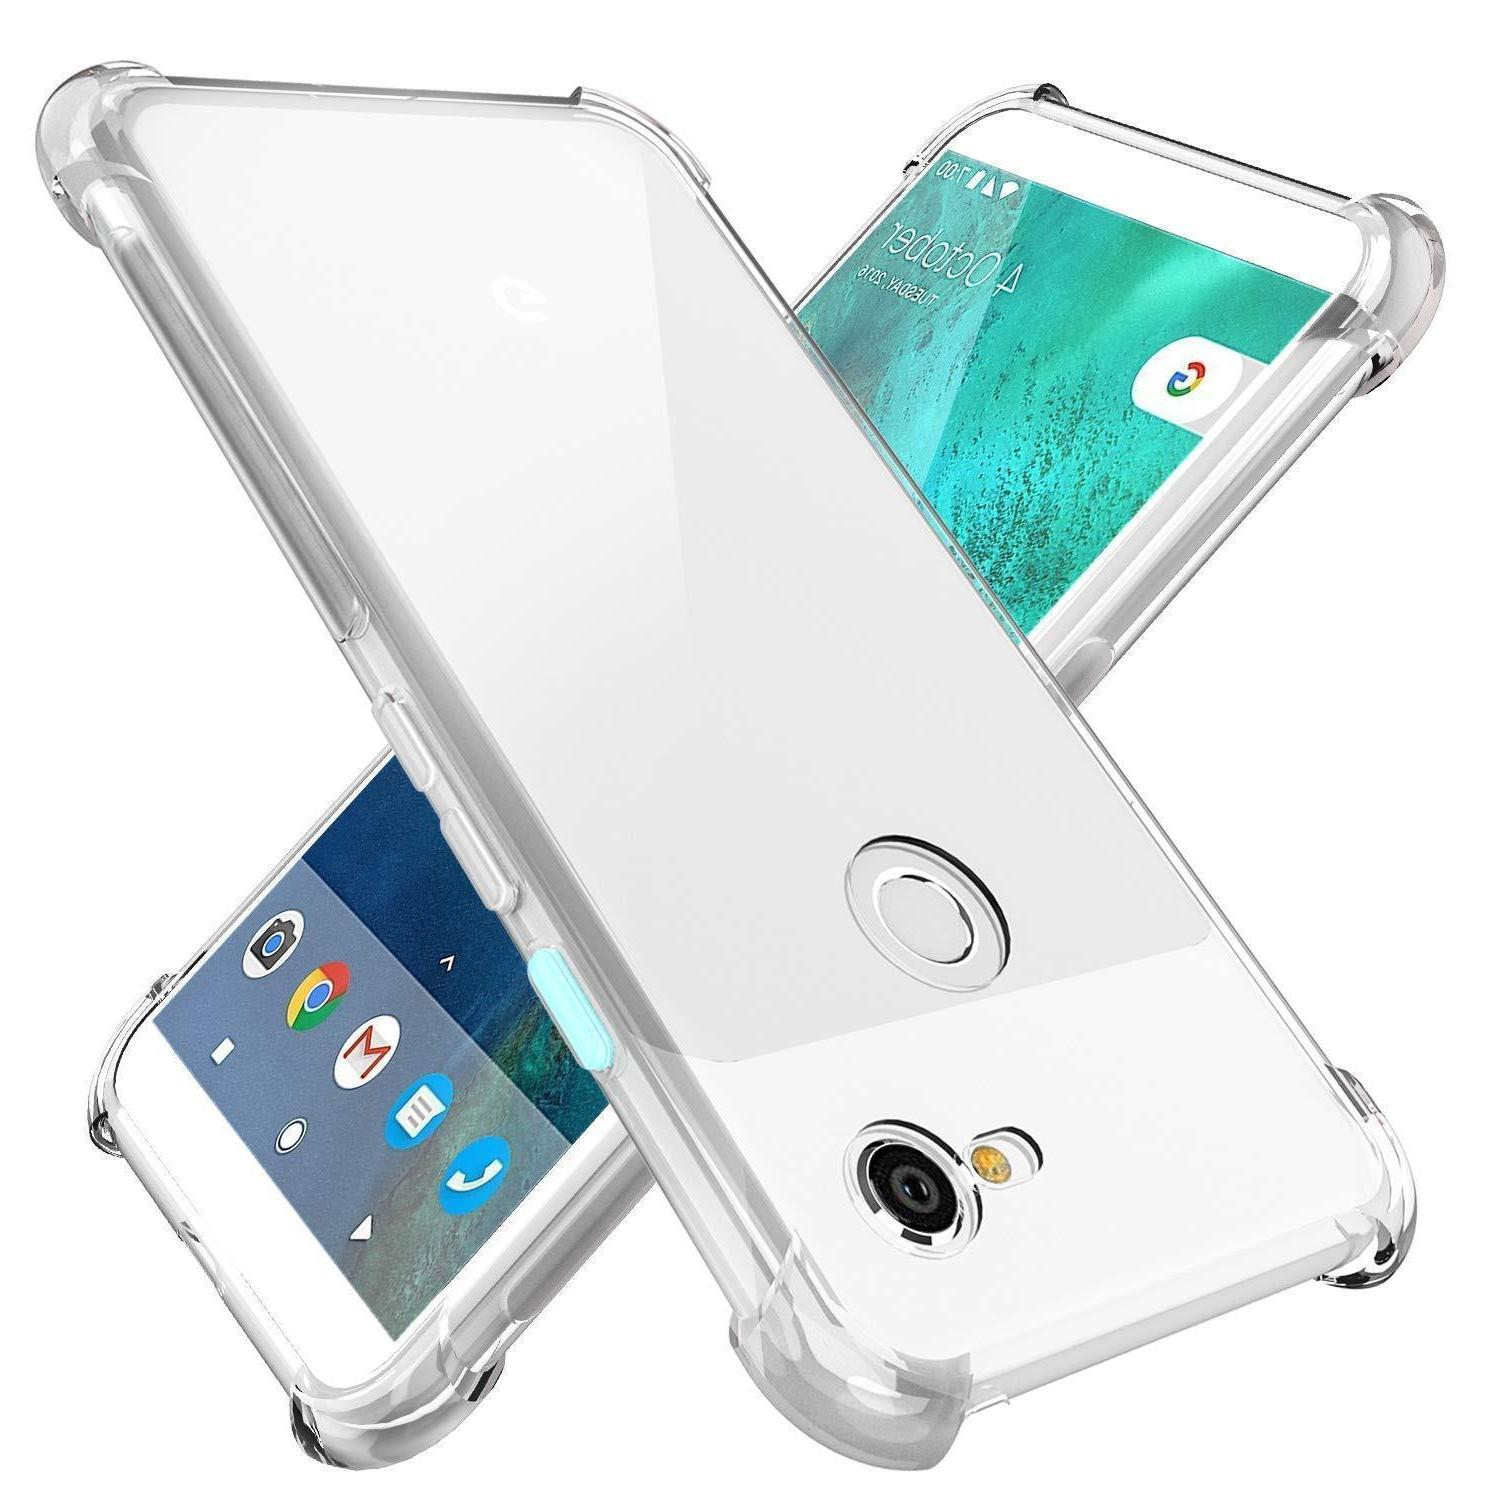 Case Protectors for iPhone XR X, Xs Max 6S 7 Plus Clear